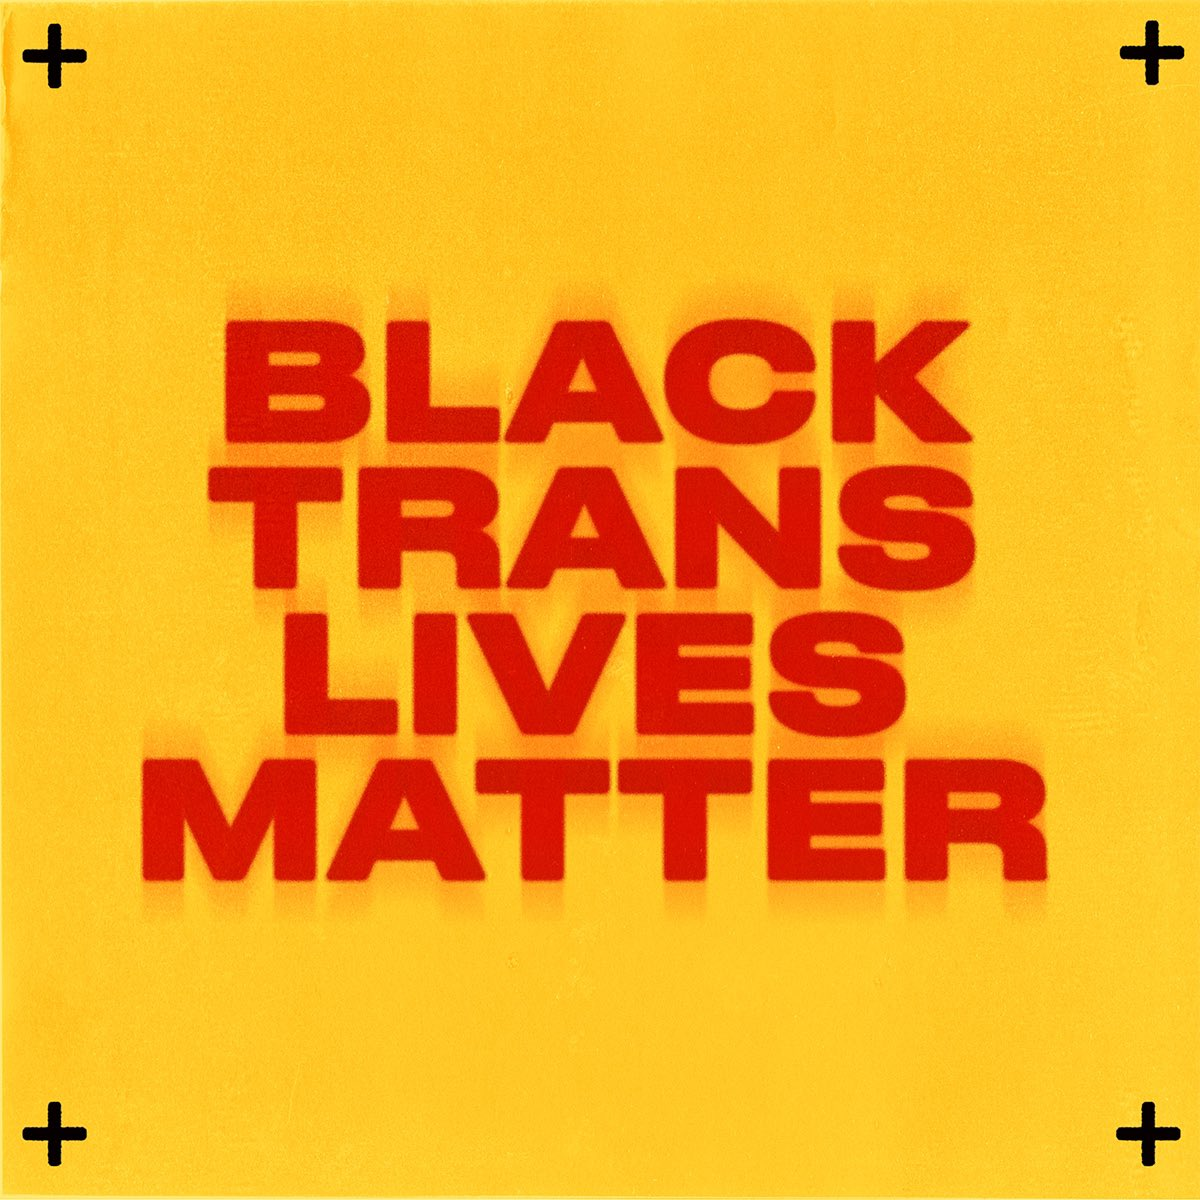 Black Trans Lives Matter. We stand with the Black transgender community in their fight for equality, recognition, and justice.